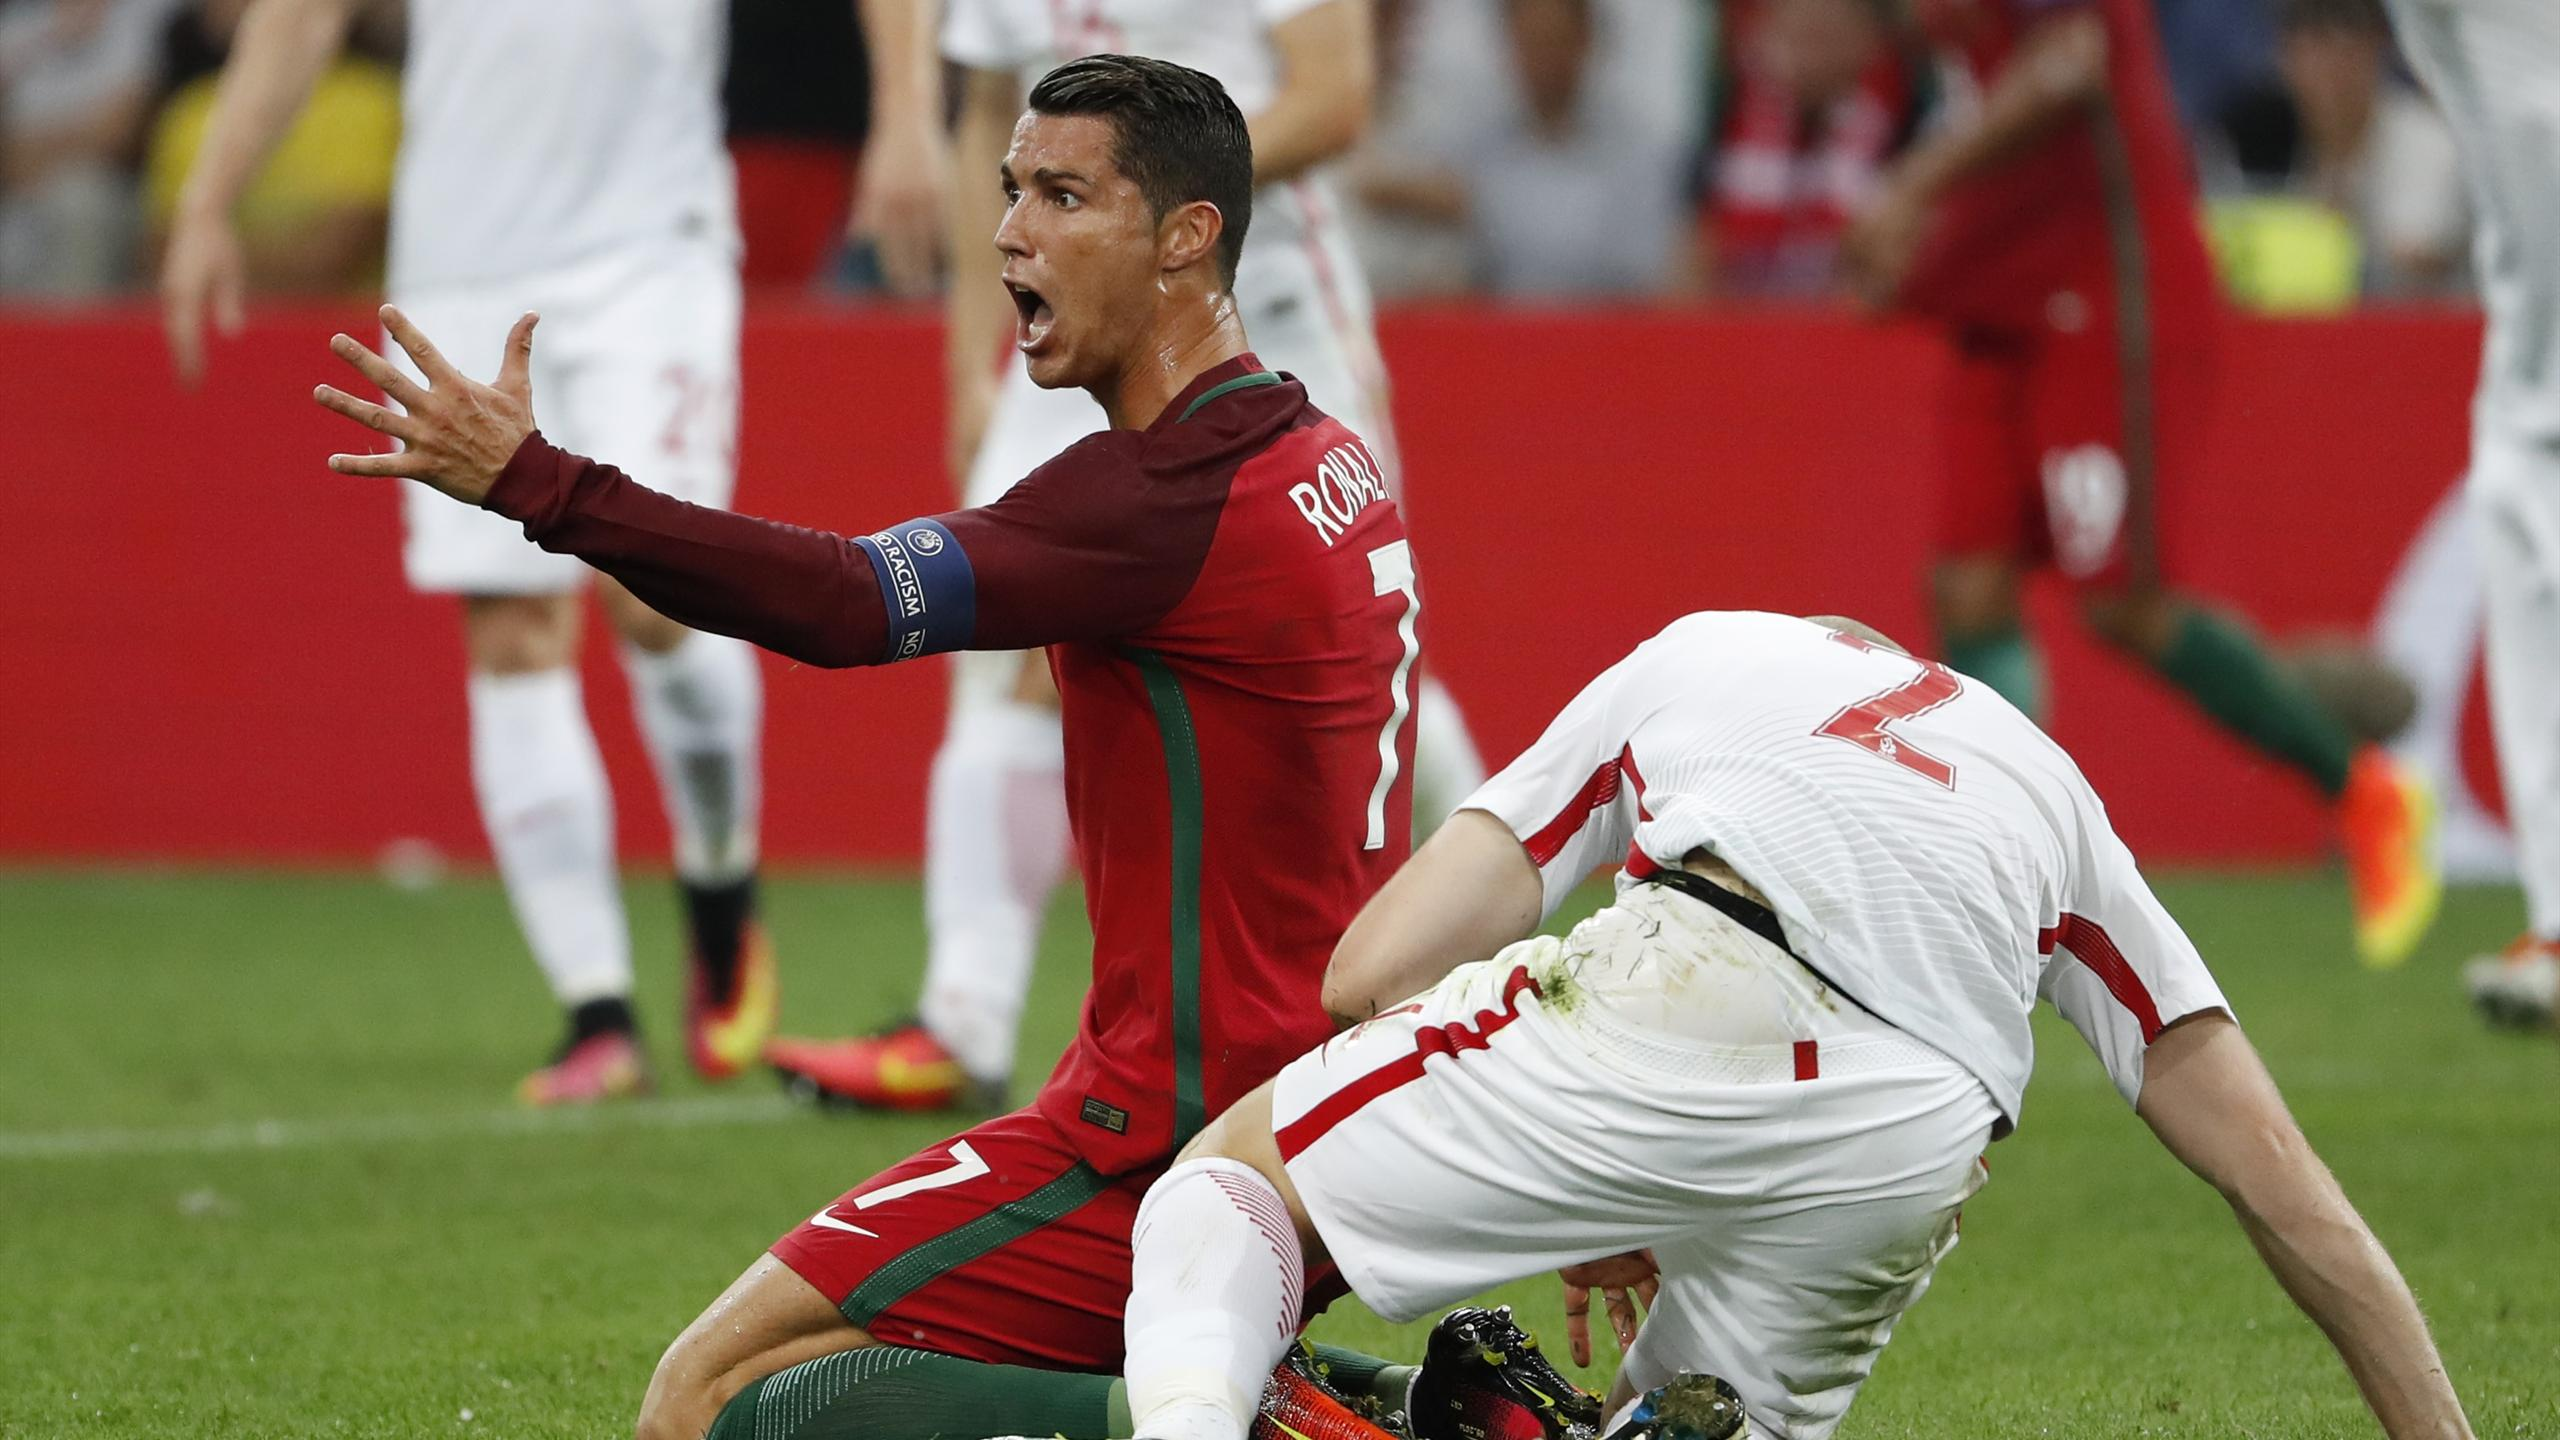 Portugal's Cristiano Ronaldo reacts after a challenge from Poland's Michal Pazdan